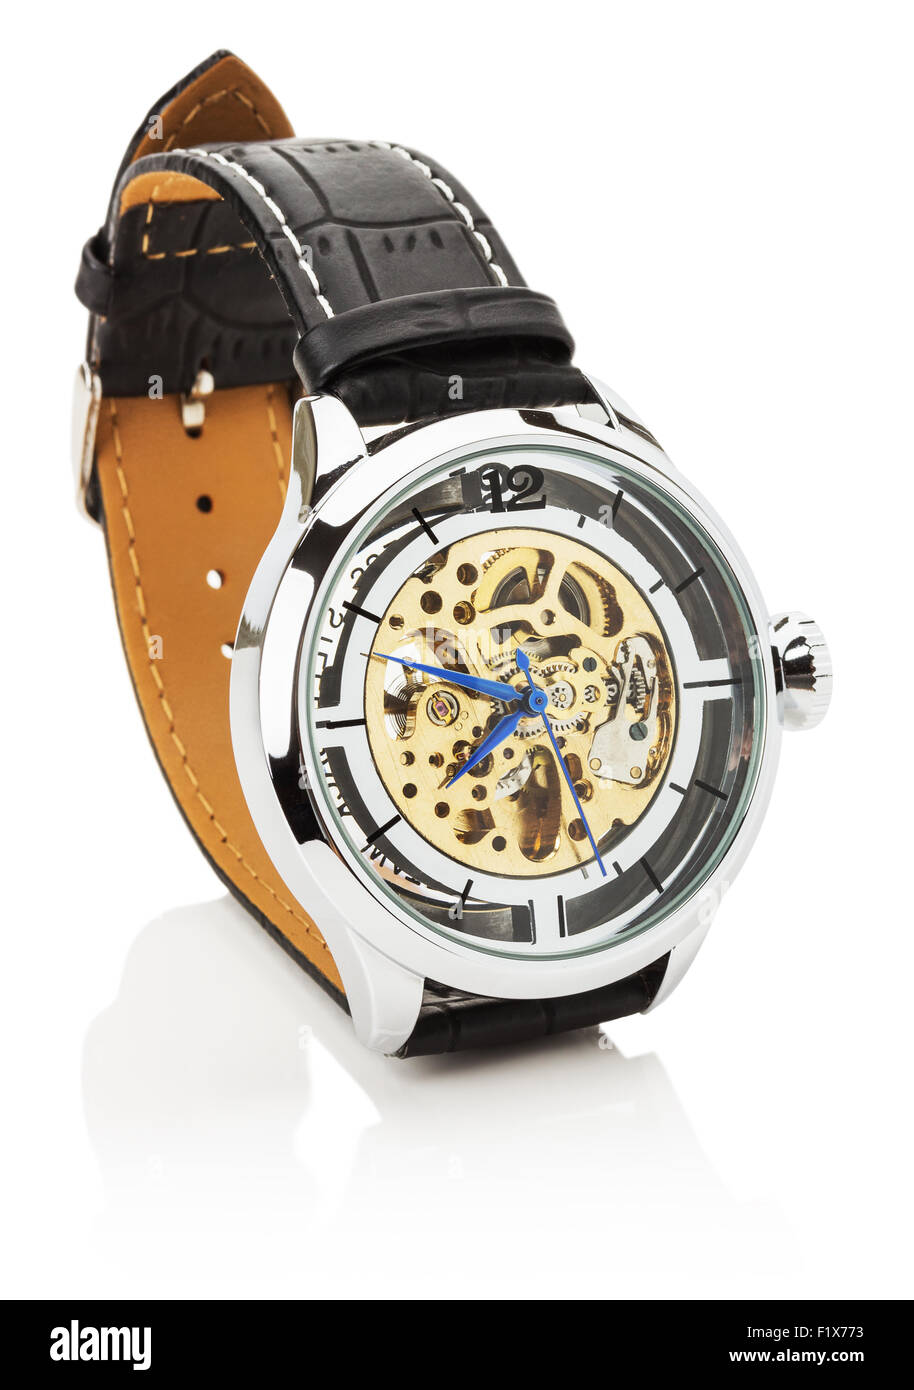 luxury watch isolated on the white background. - Stock Image